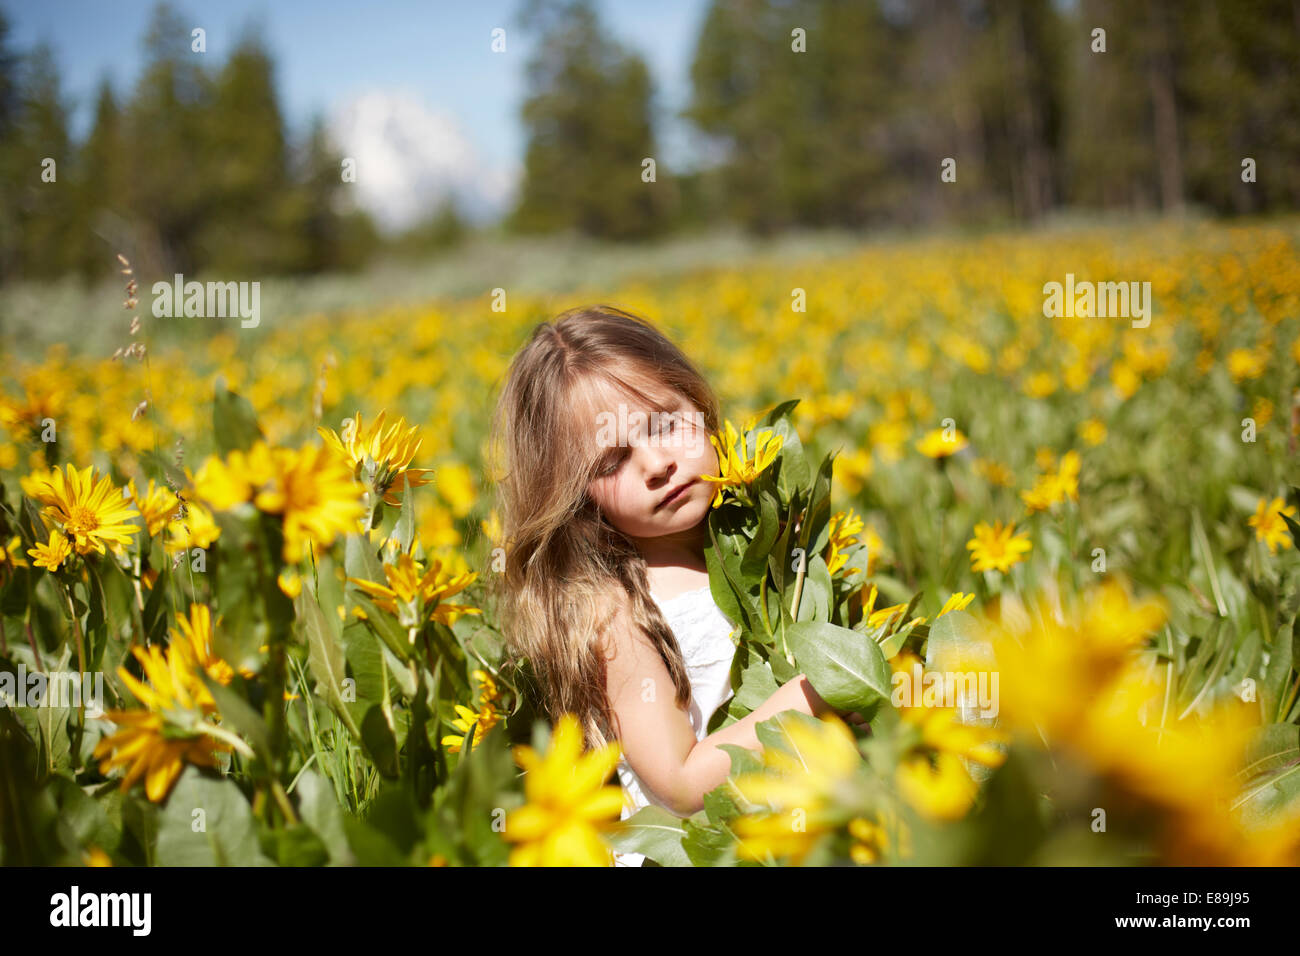 Girl in field of wildflowers - Stock Image